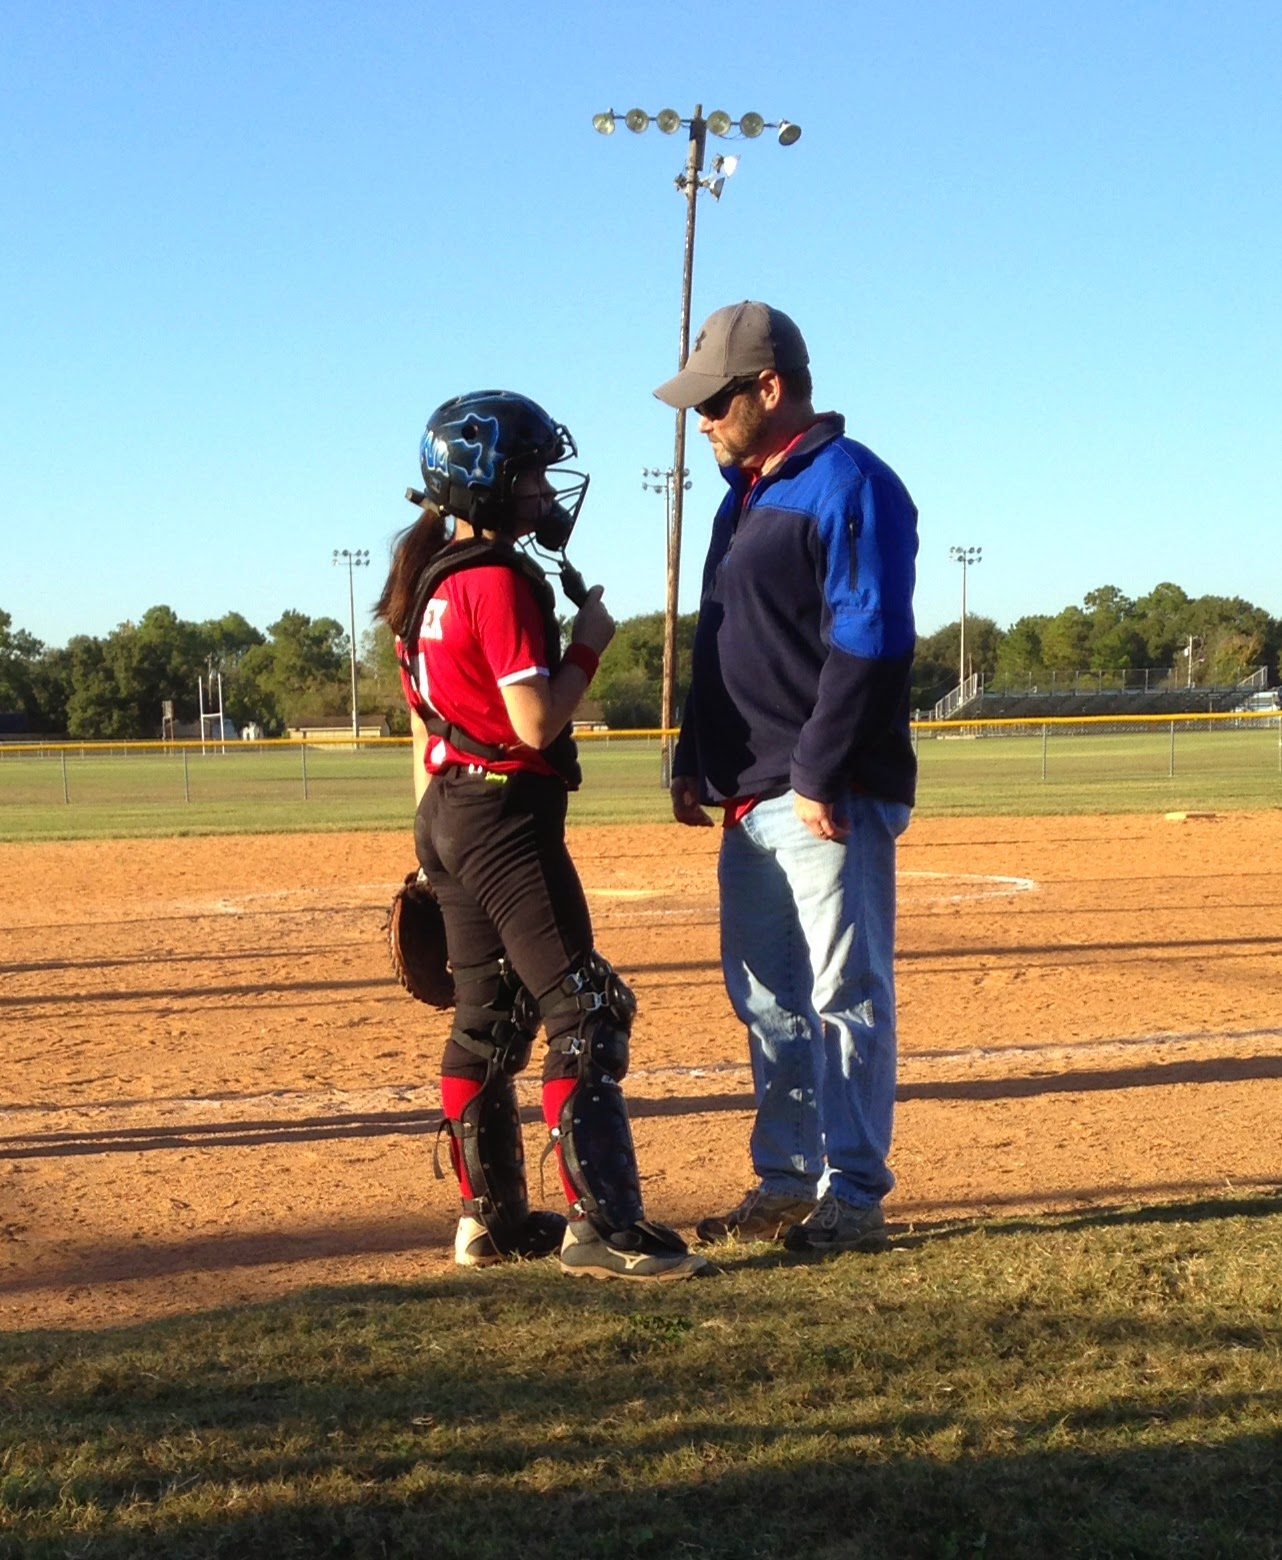 Fastpitch 12U softball catcher coach